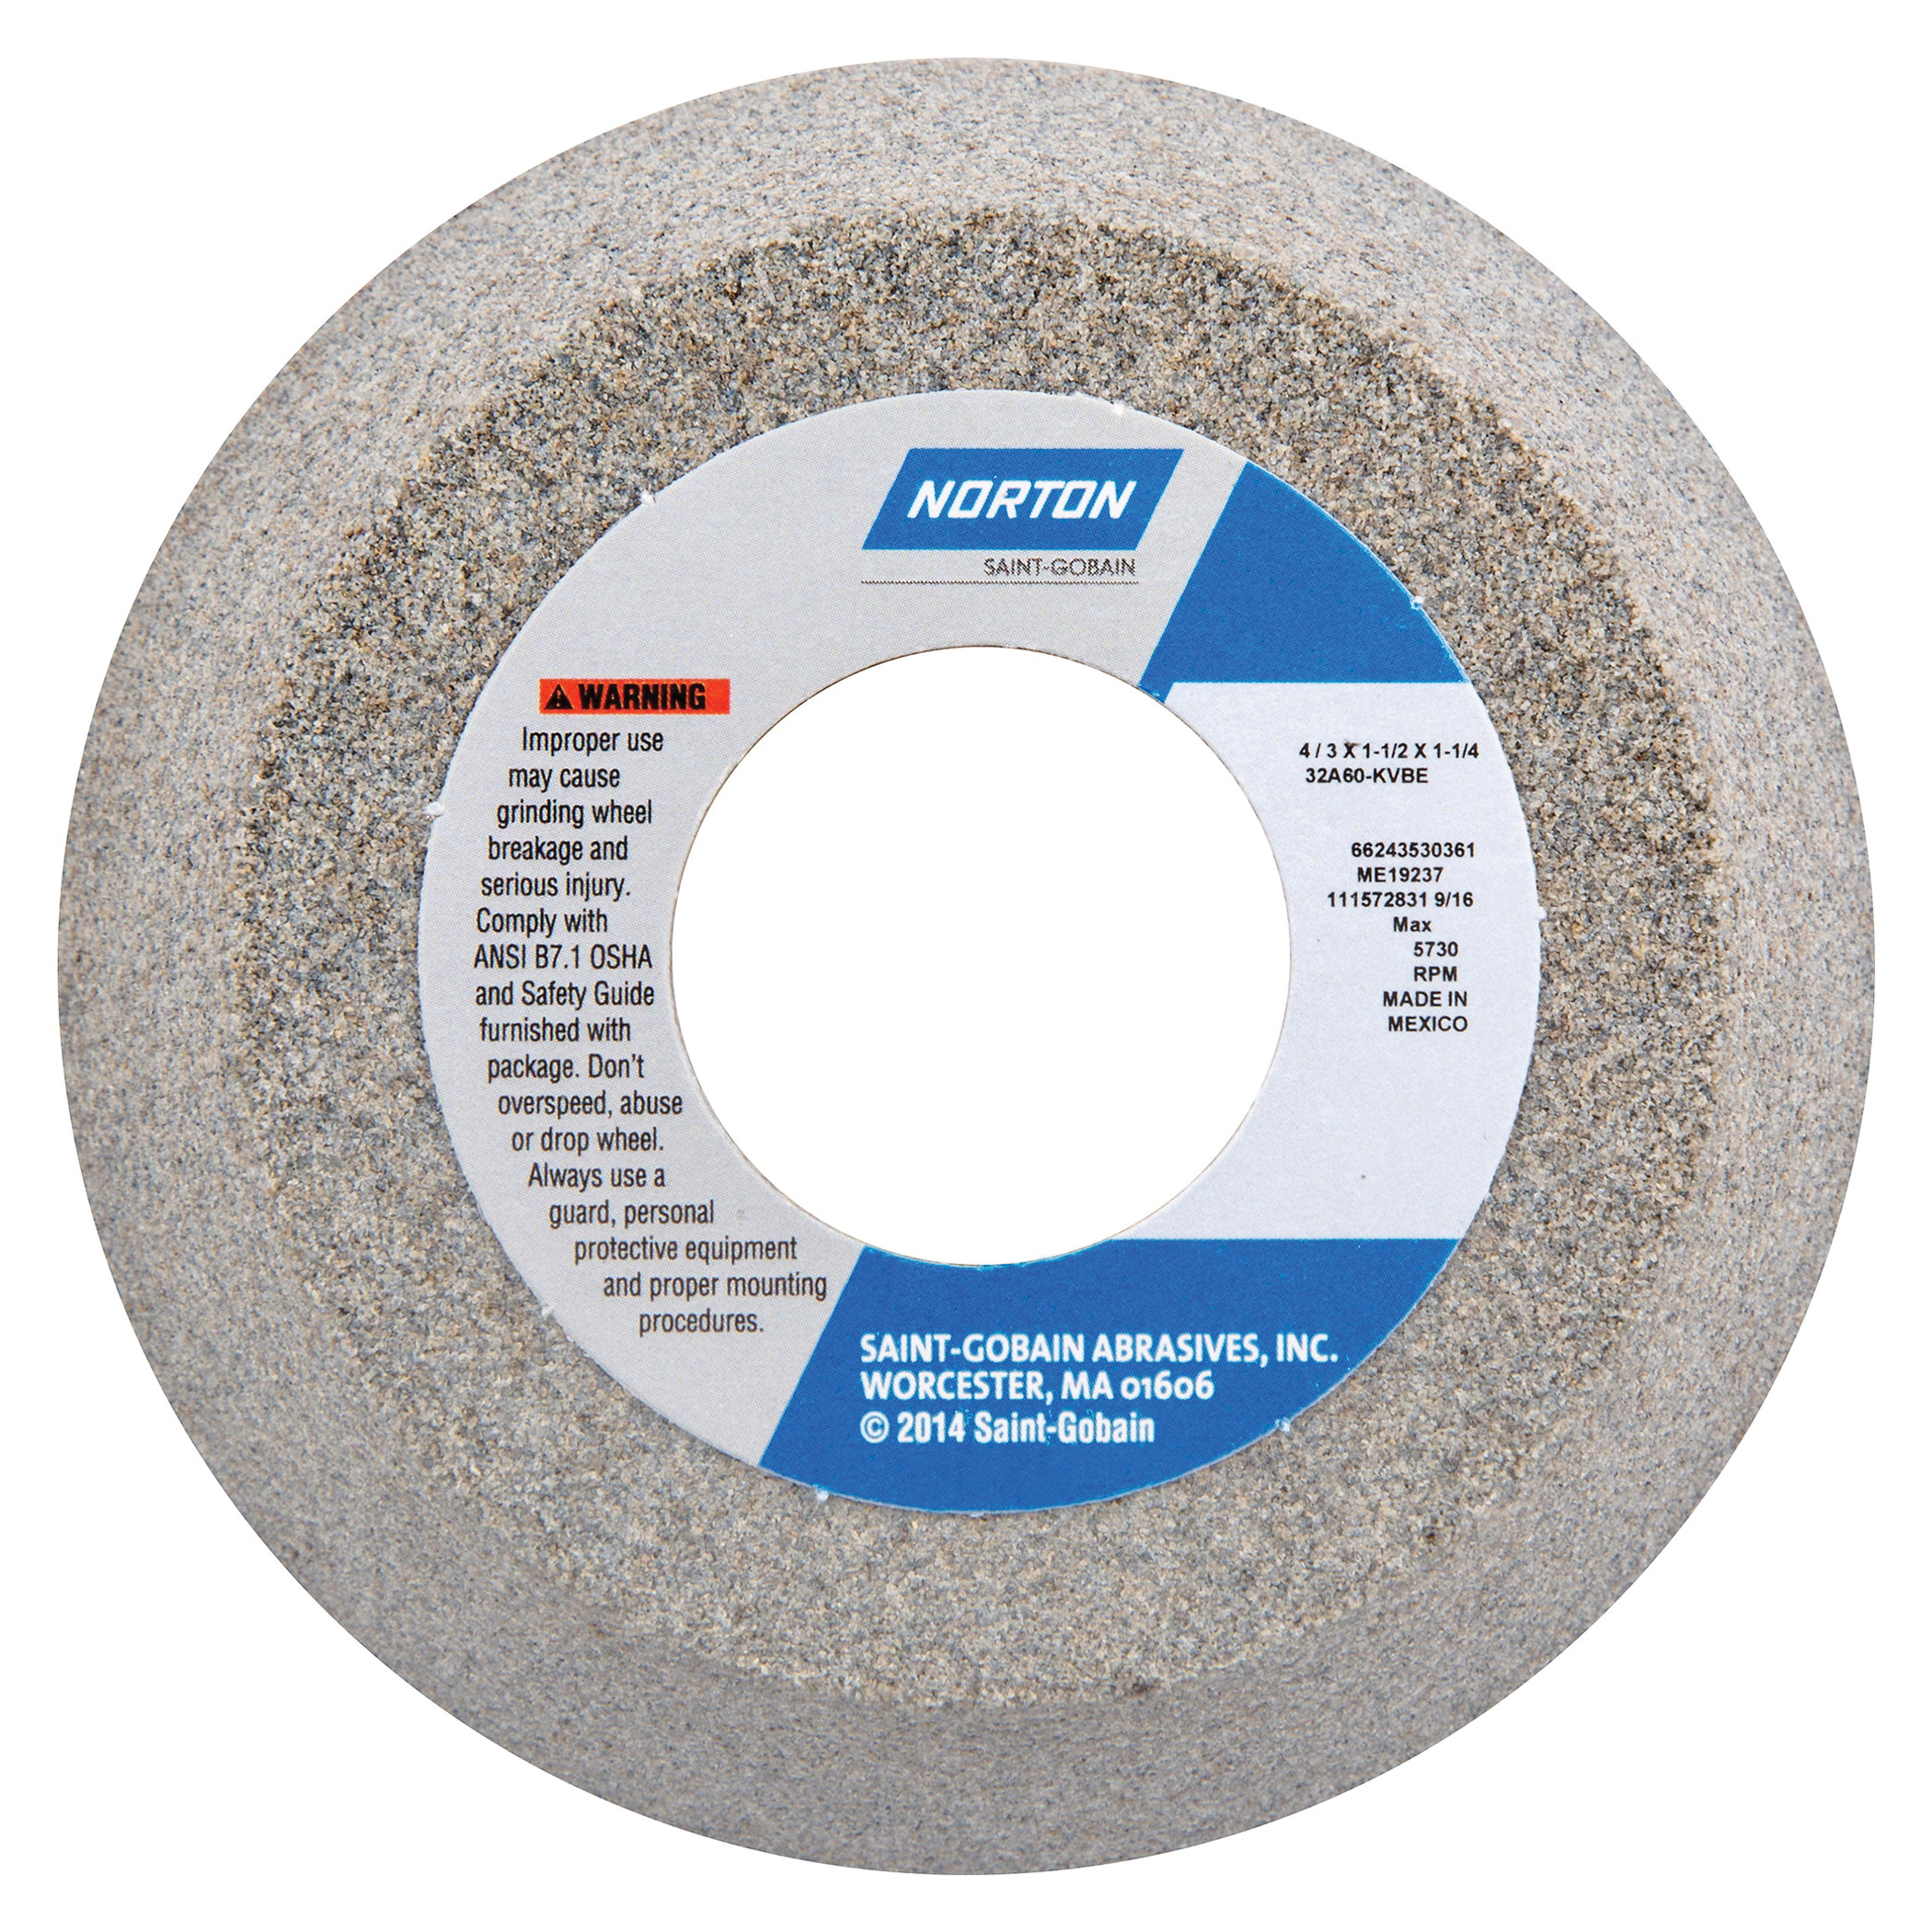 Norton® 66243530246 32A Toolroom Wheel, 4 in Dia x 1-1/2 in THK, 1-1/4 in Center Hole, 46 Grit, Aluminum Oxide Abrasive